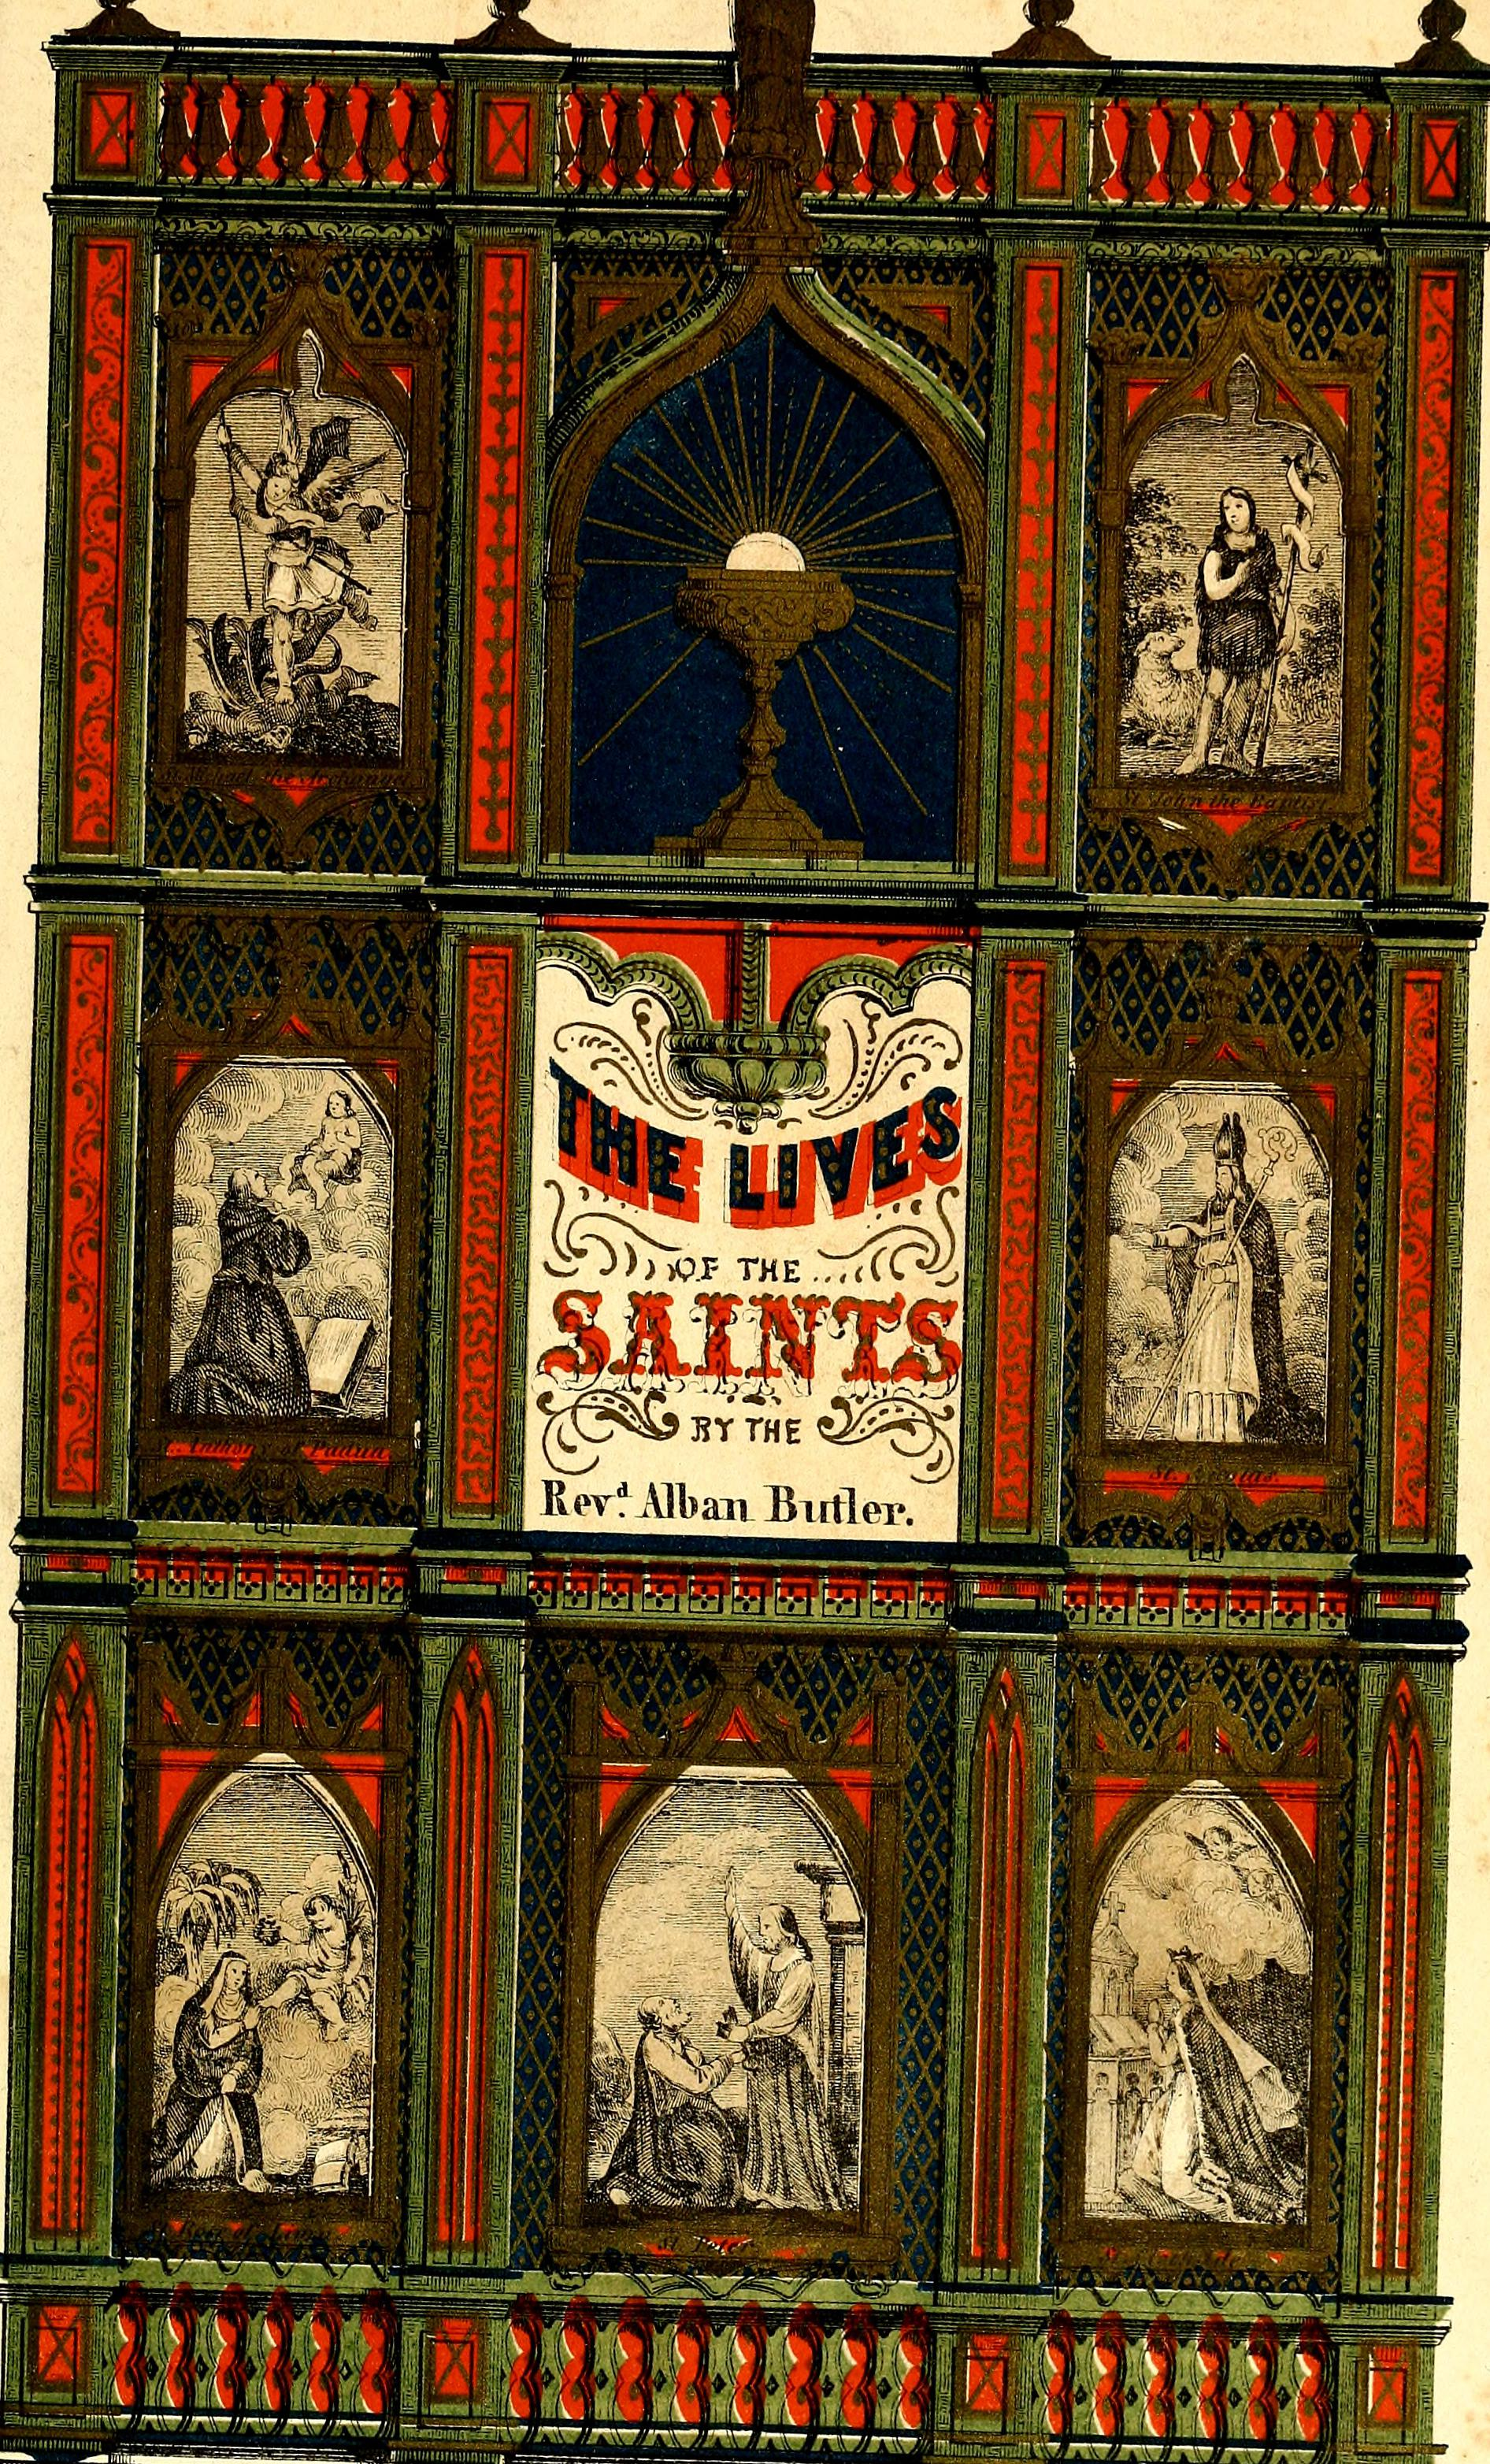 ''The Lives of the Saints''